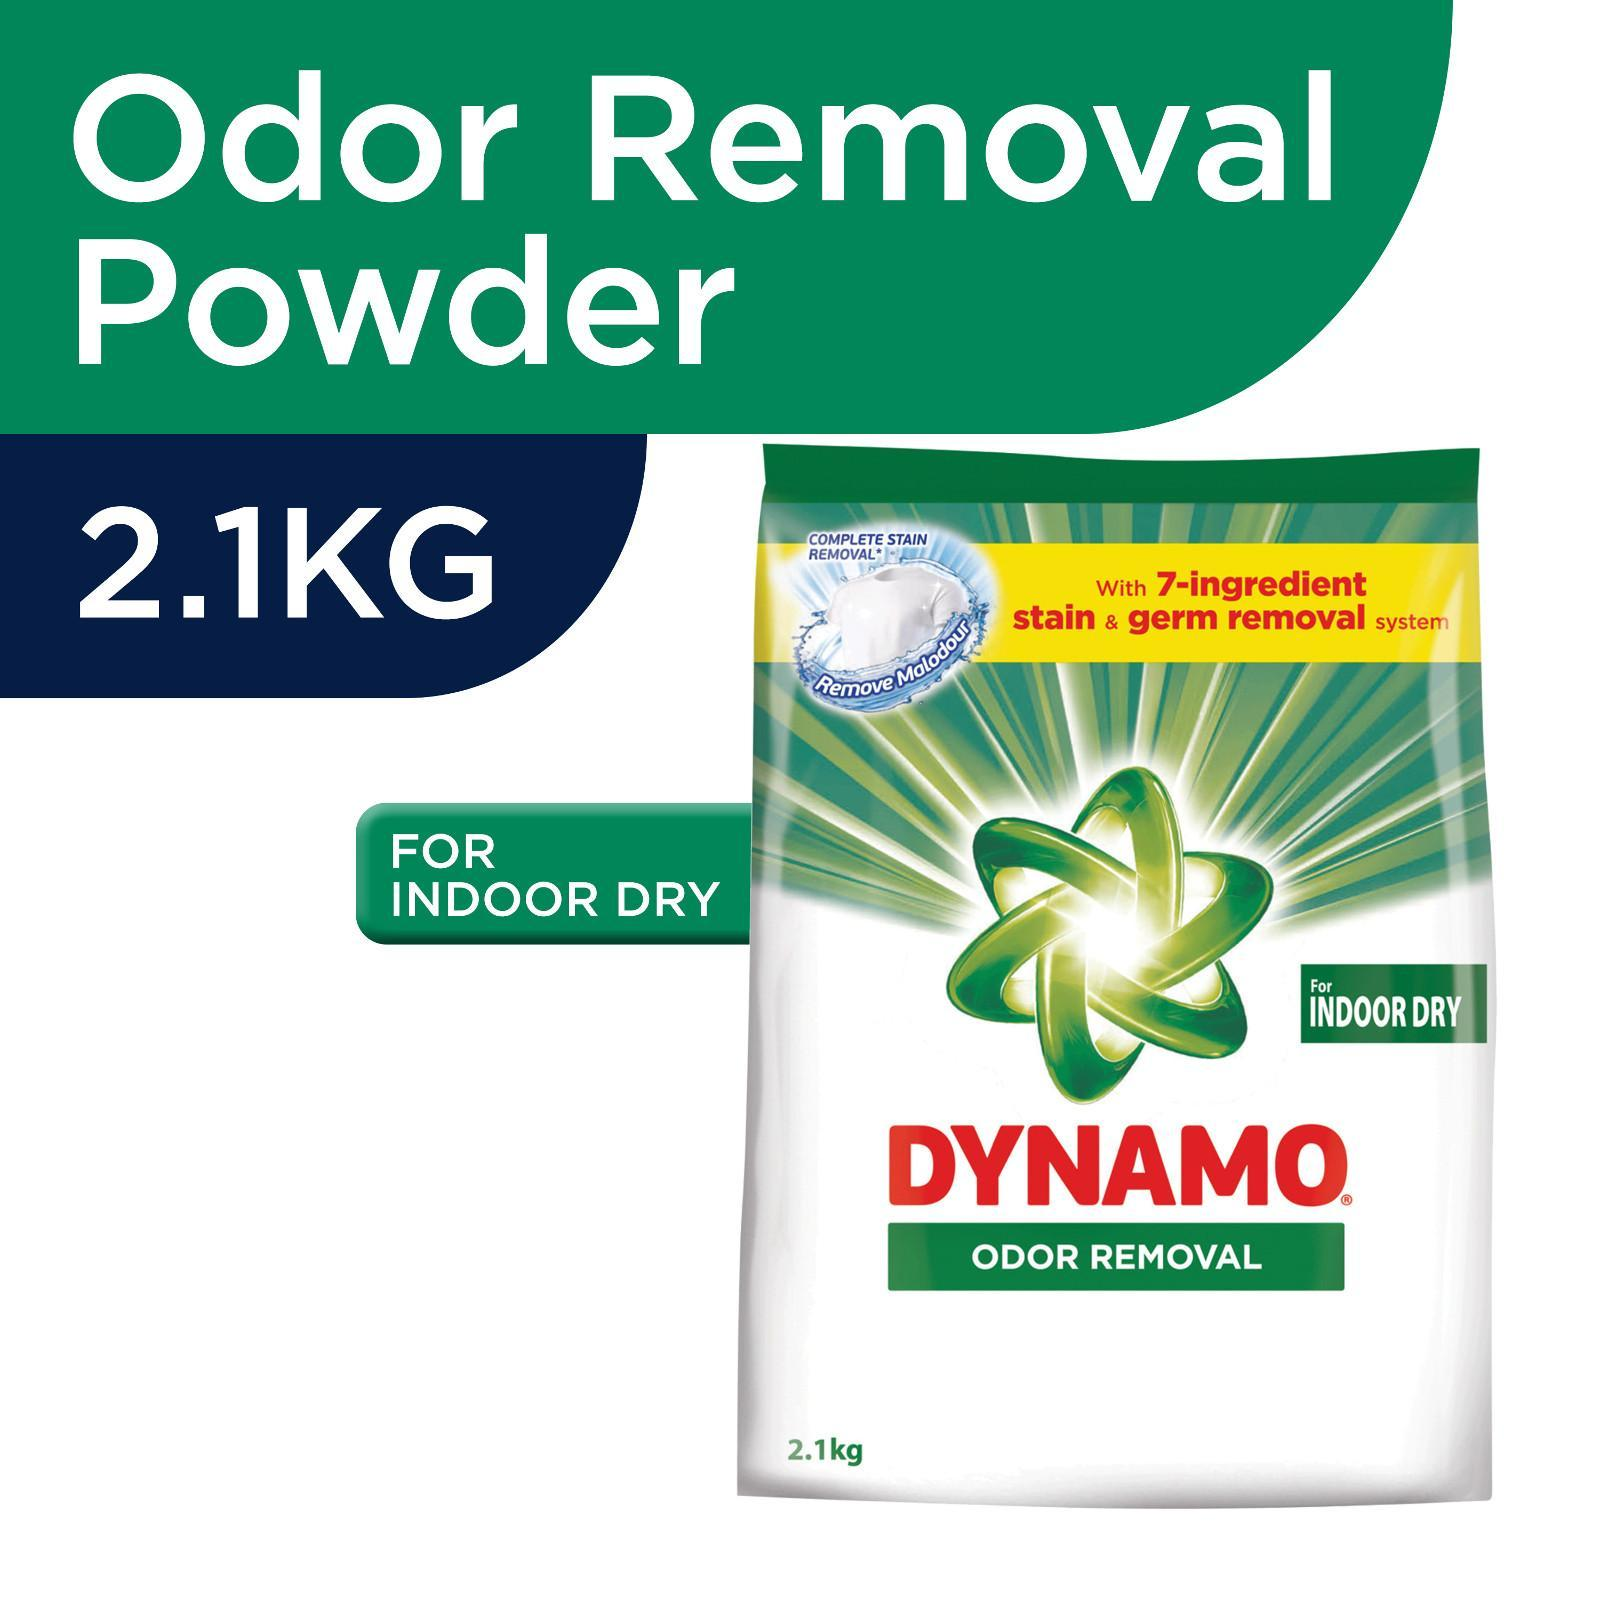 DYNAMO Liquid Detergent Indoor Drying Odor Removal Refill 1.44kg